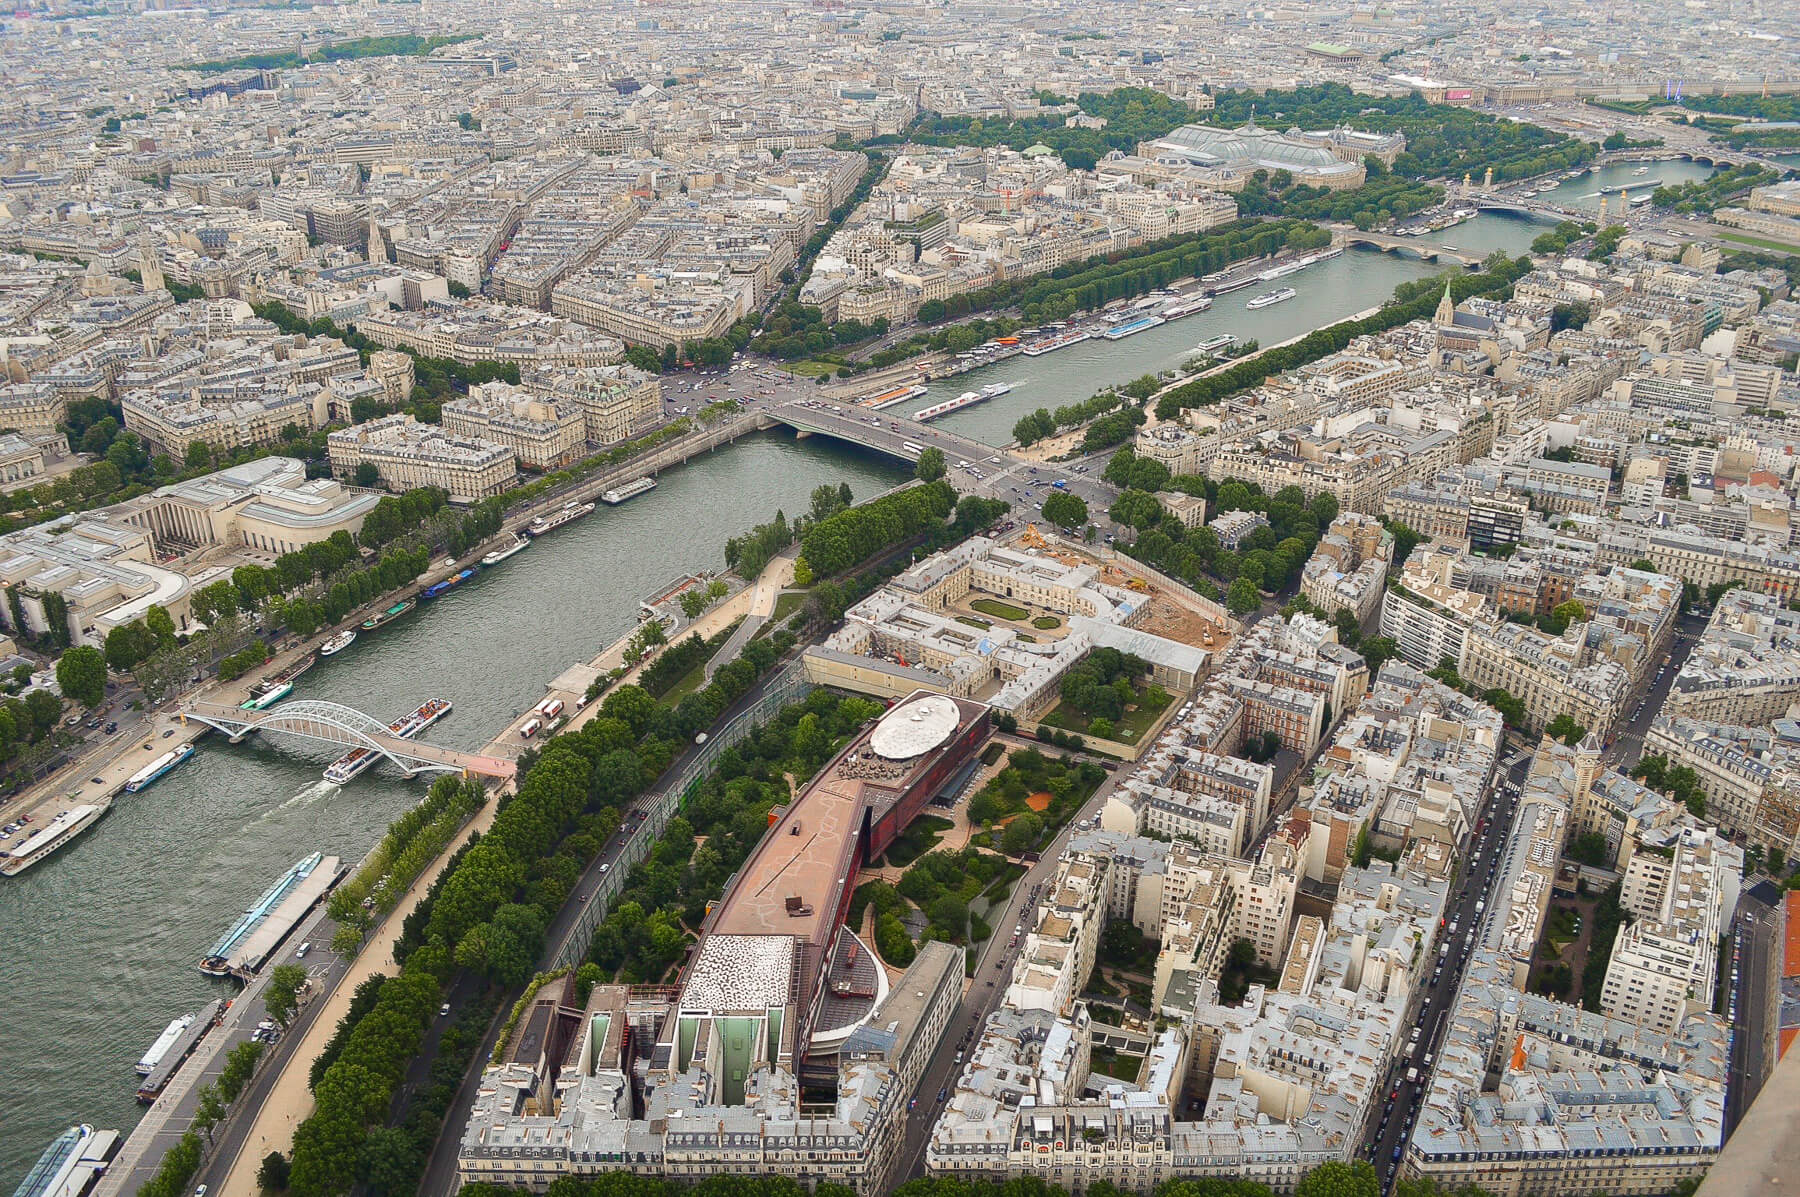 view of paris from onto of Eiffel Tower